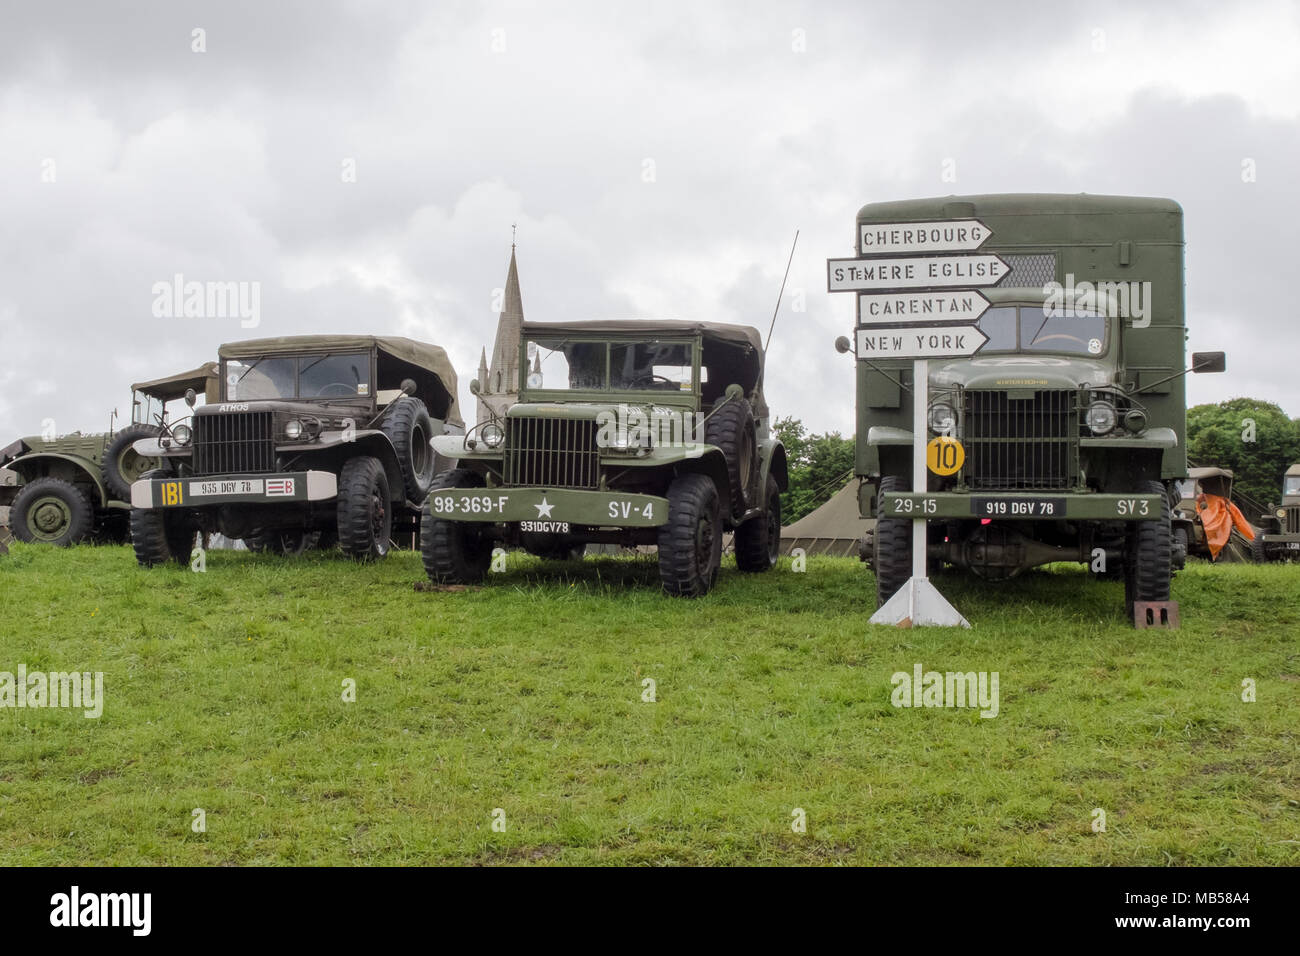 Colleville sur mer, France, Jun 4th 2014: re-enactment of military camp on the occasion of the anniversary of the Normandy landings. - Stock Image